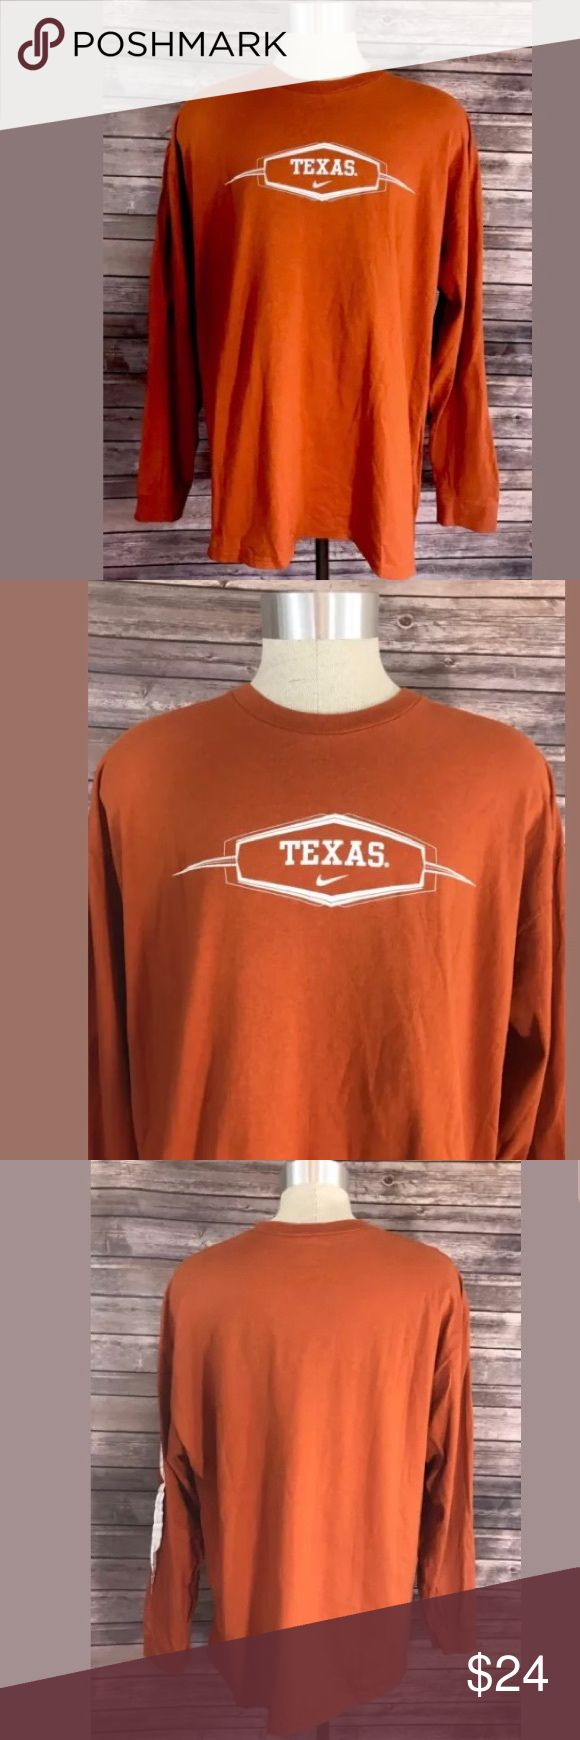 Nike Mens T Shirt Size XXL Texas Longhorns Orange Nike Mens T Shirt Size XXL Texas Longhorns Orange Long Sleeve Tee 2XL. Measurements: (in inches) Underarm to underarm: 24 Length: 30 Nike Shirts Tees - Long Sleeve